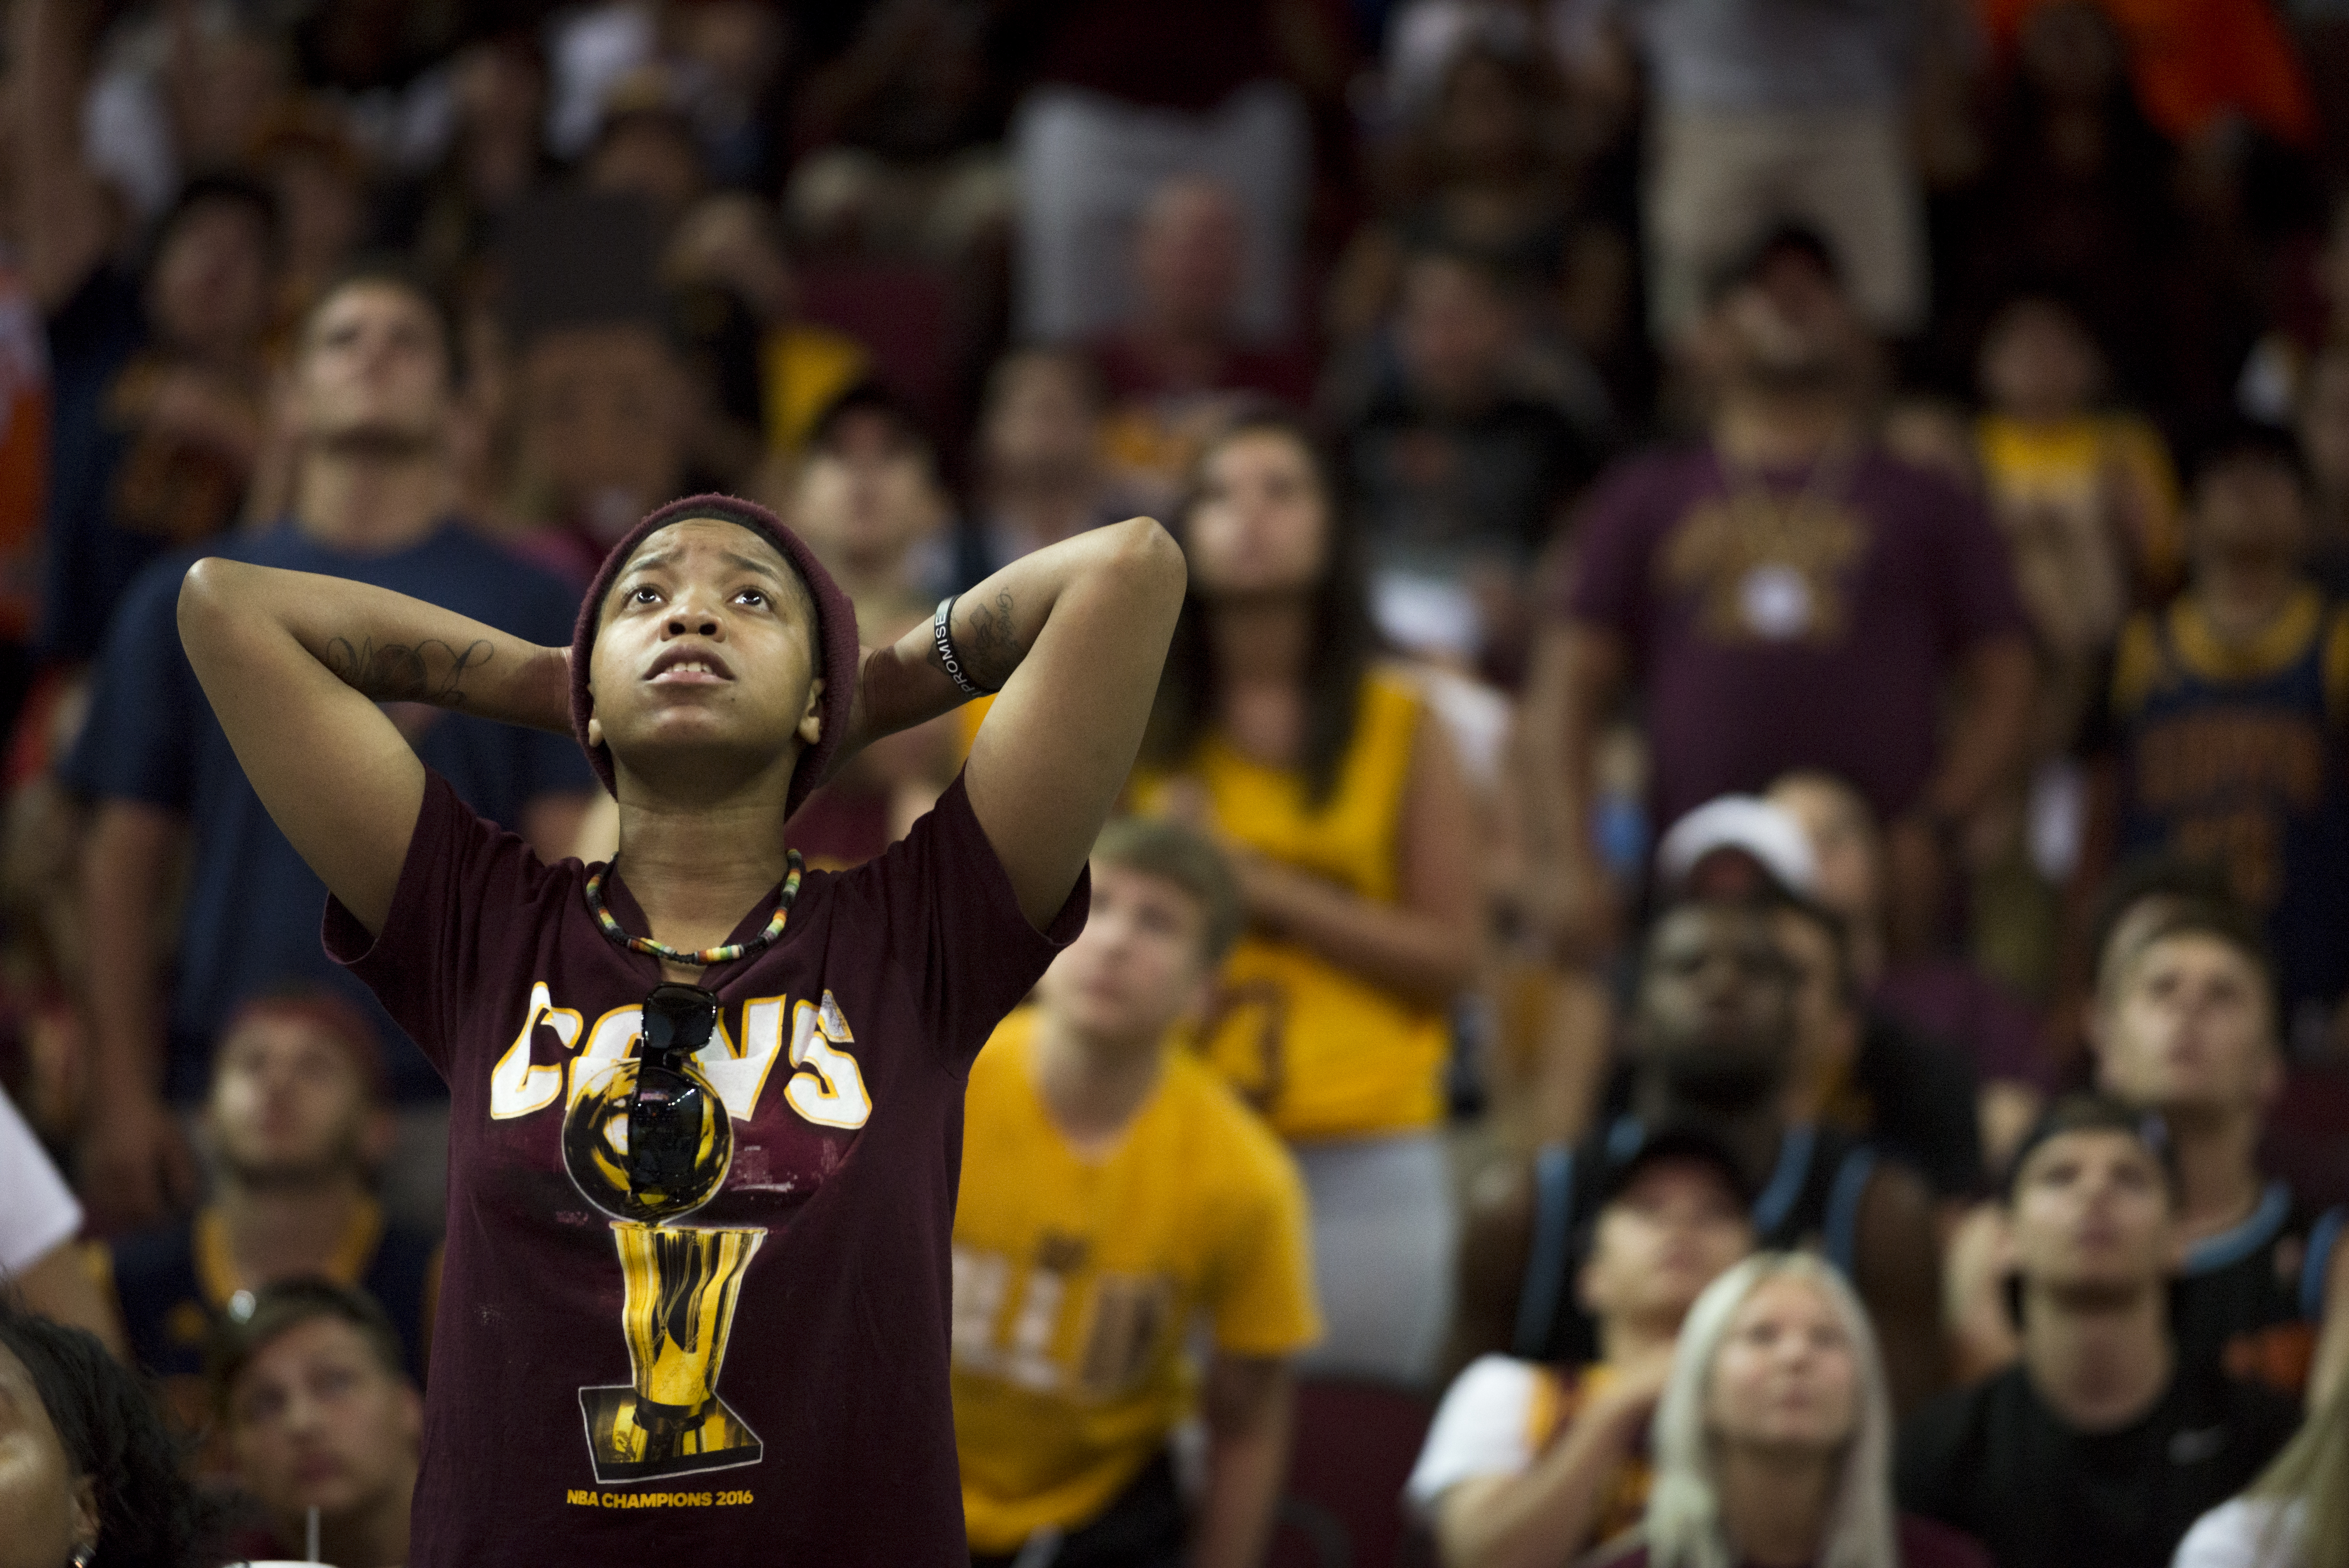 Down 3-1 In NBA Finals, Cleveland Fans Keep Hope Alive